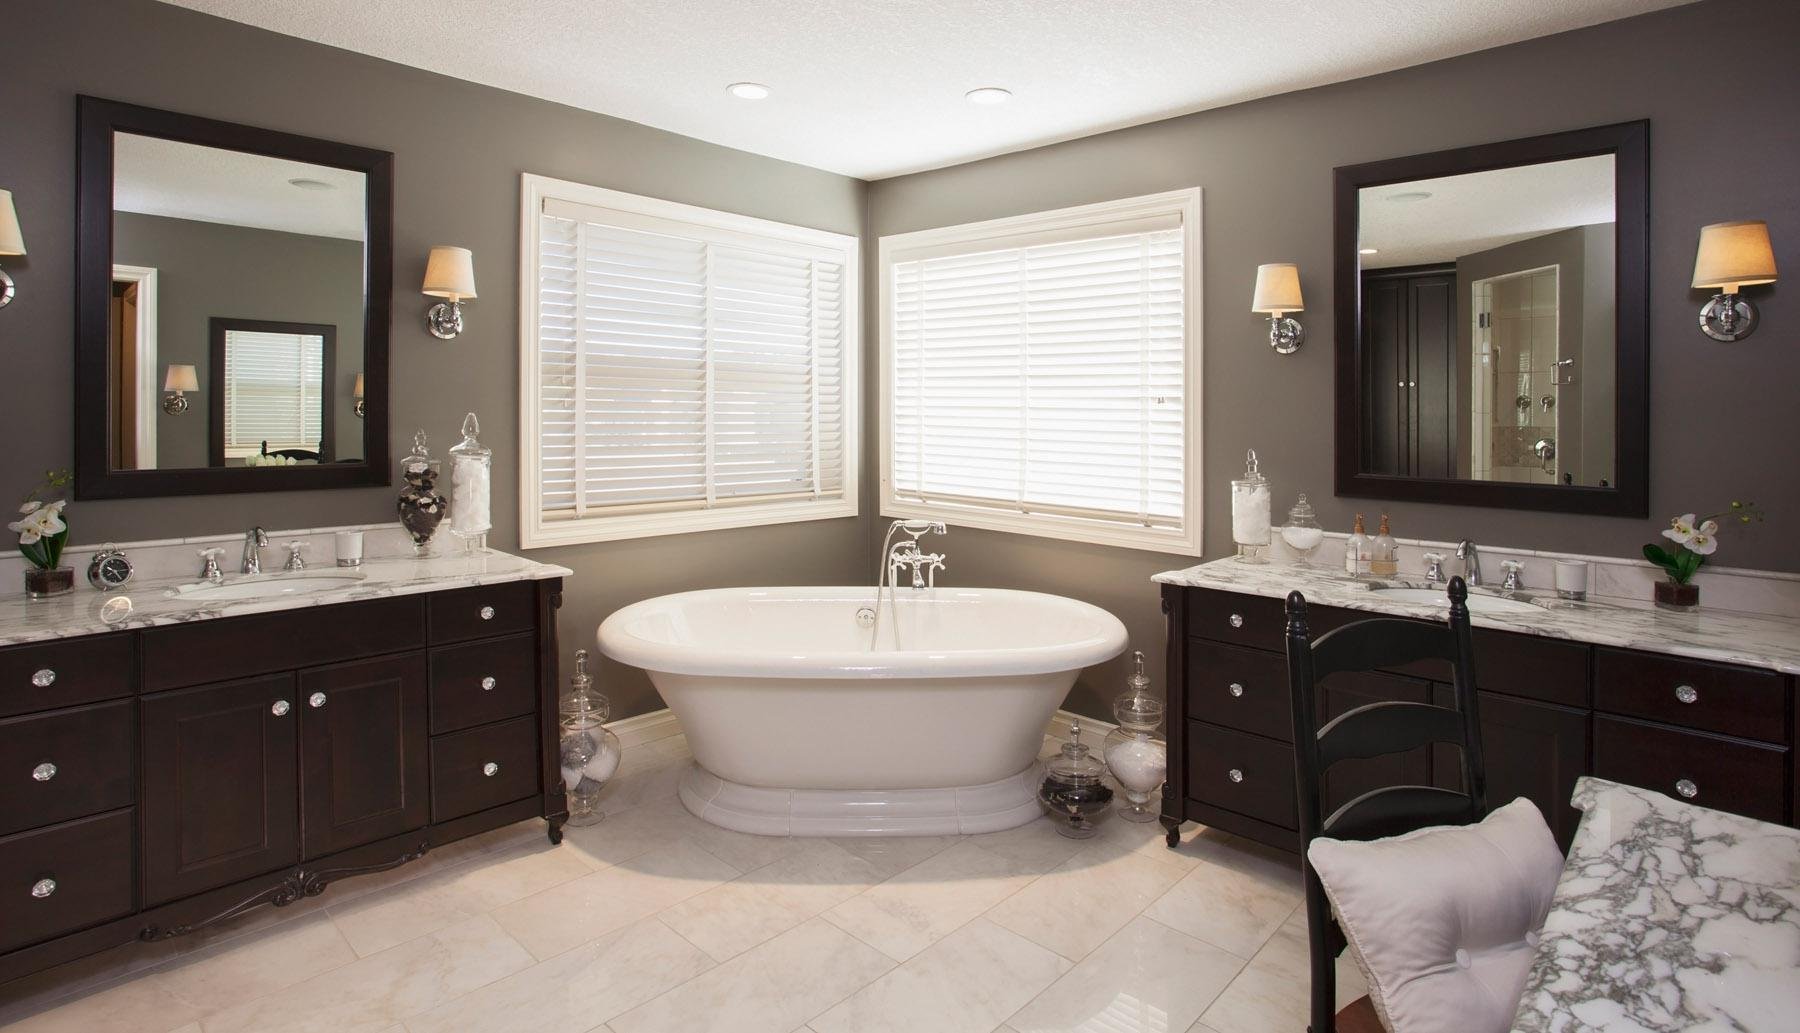 title | Bathroom renovation ideas